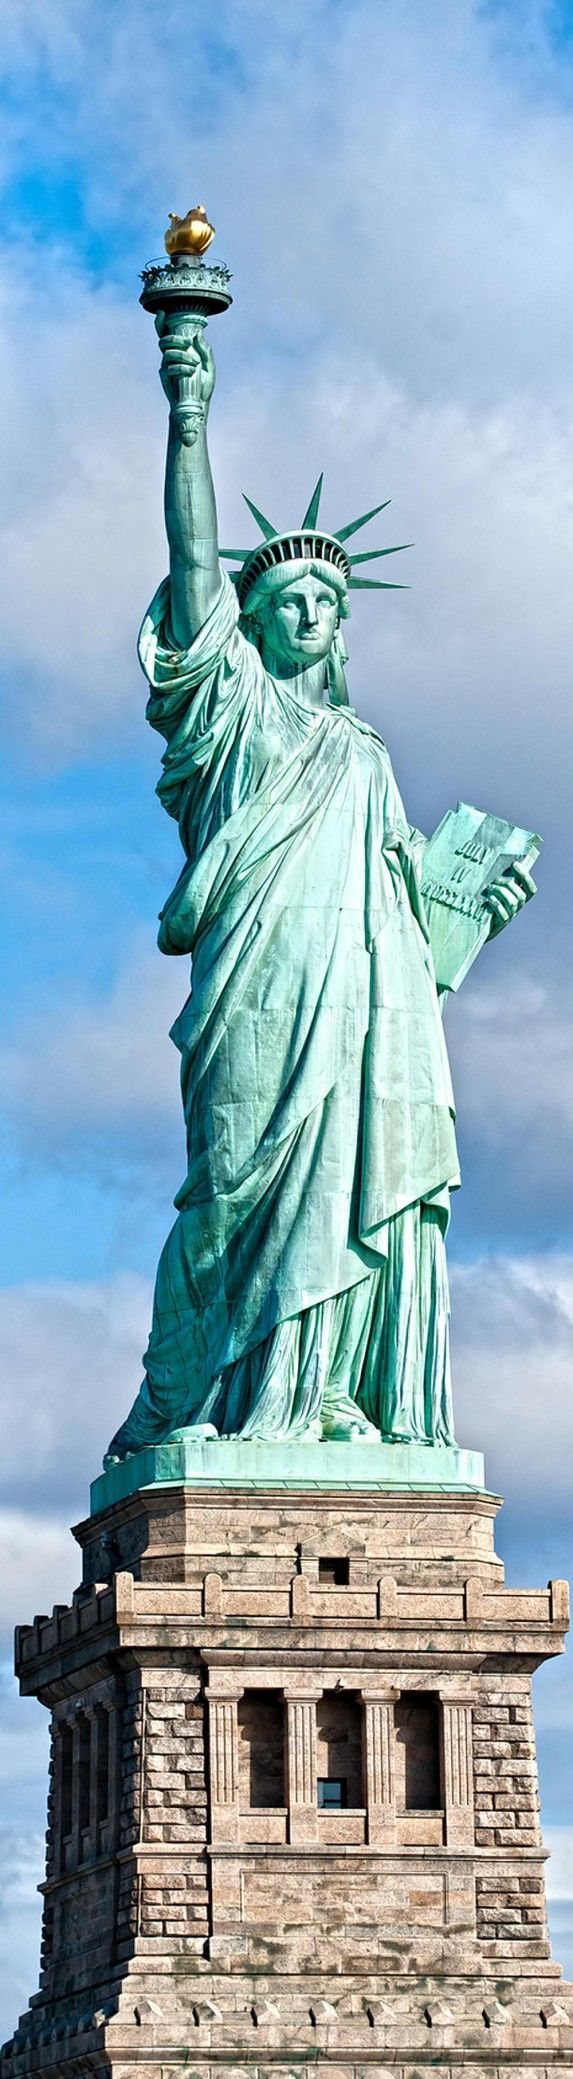 Statue of Liberty, NY by MagicMurals #photography